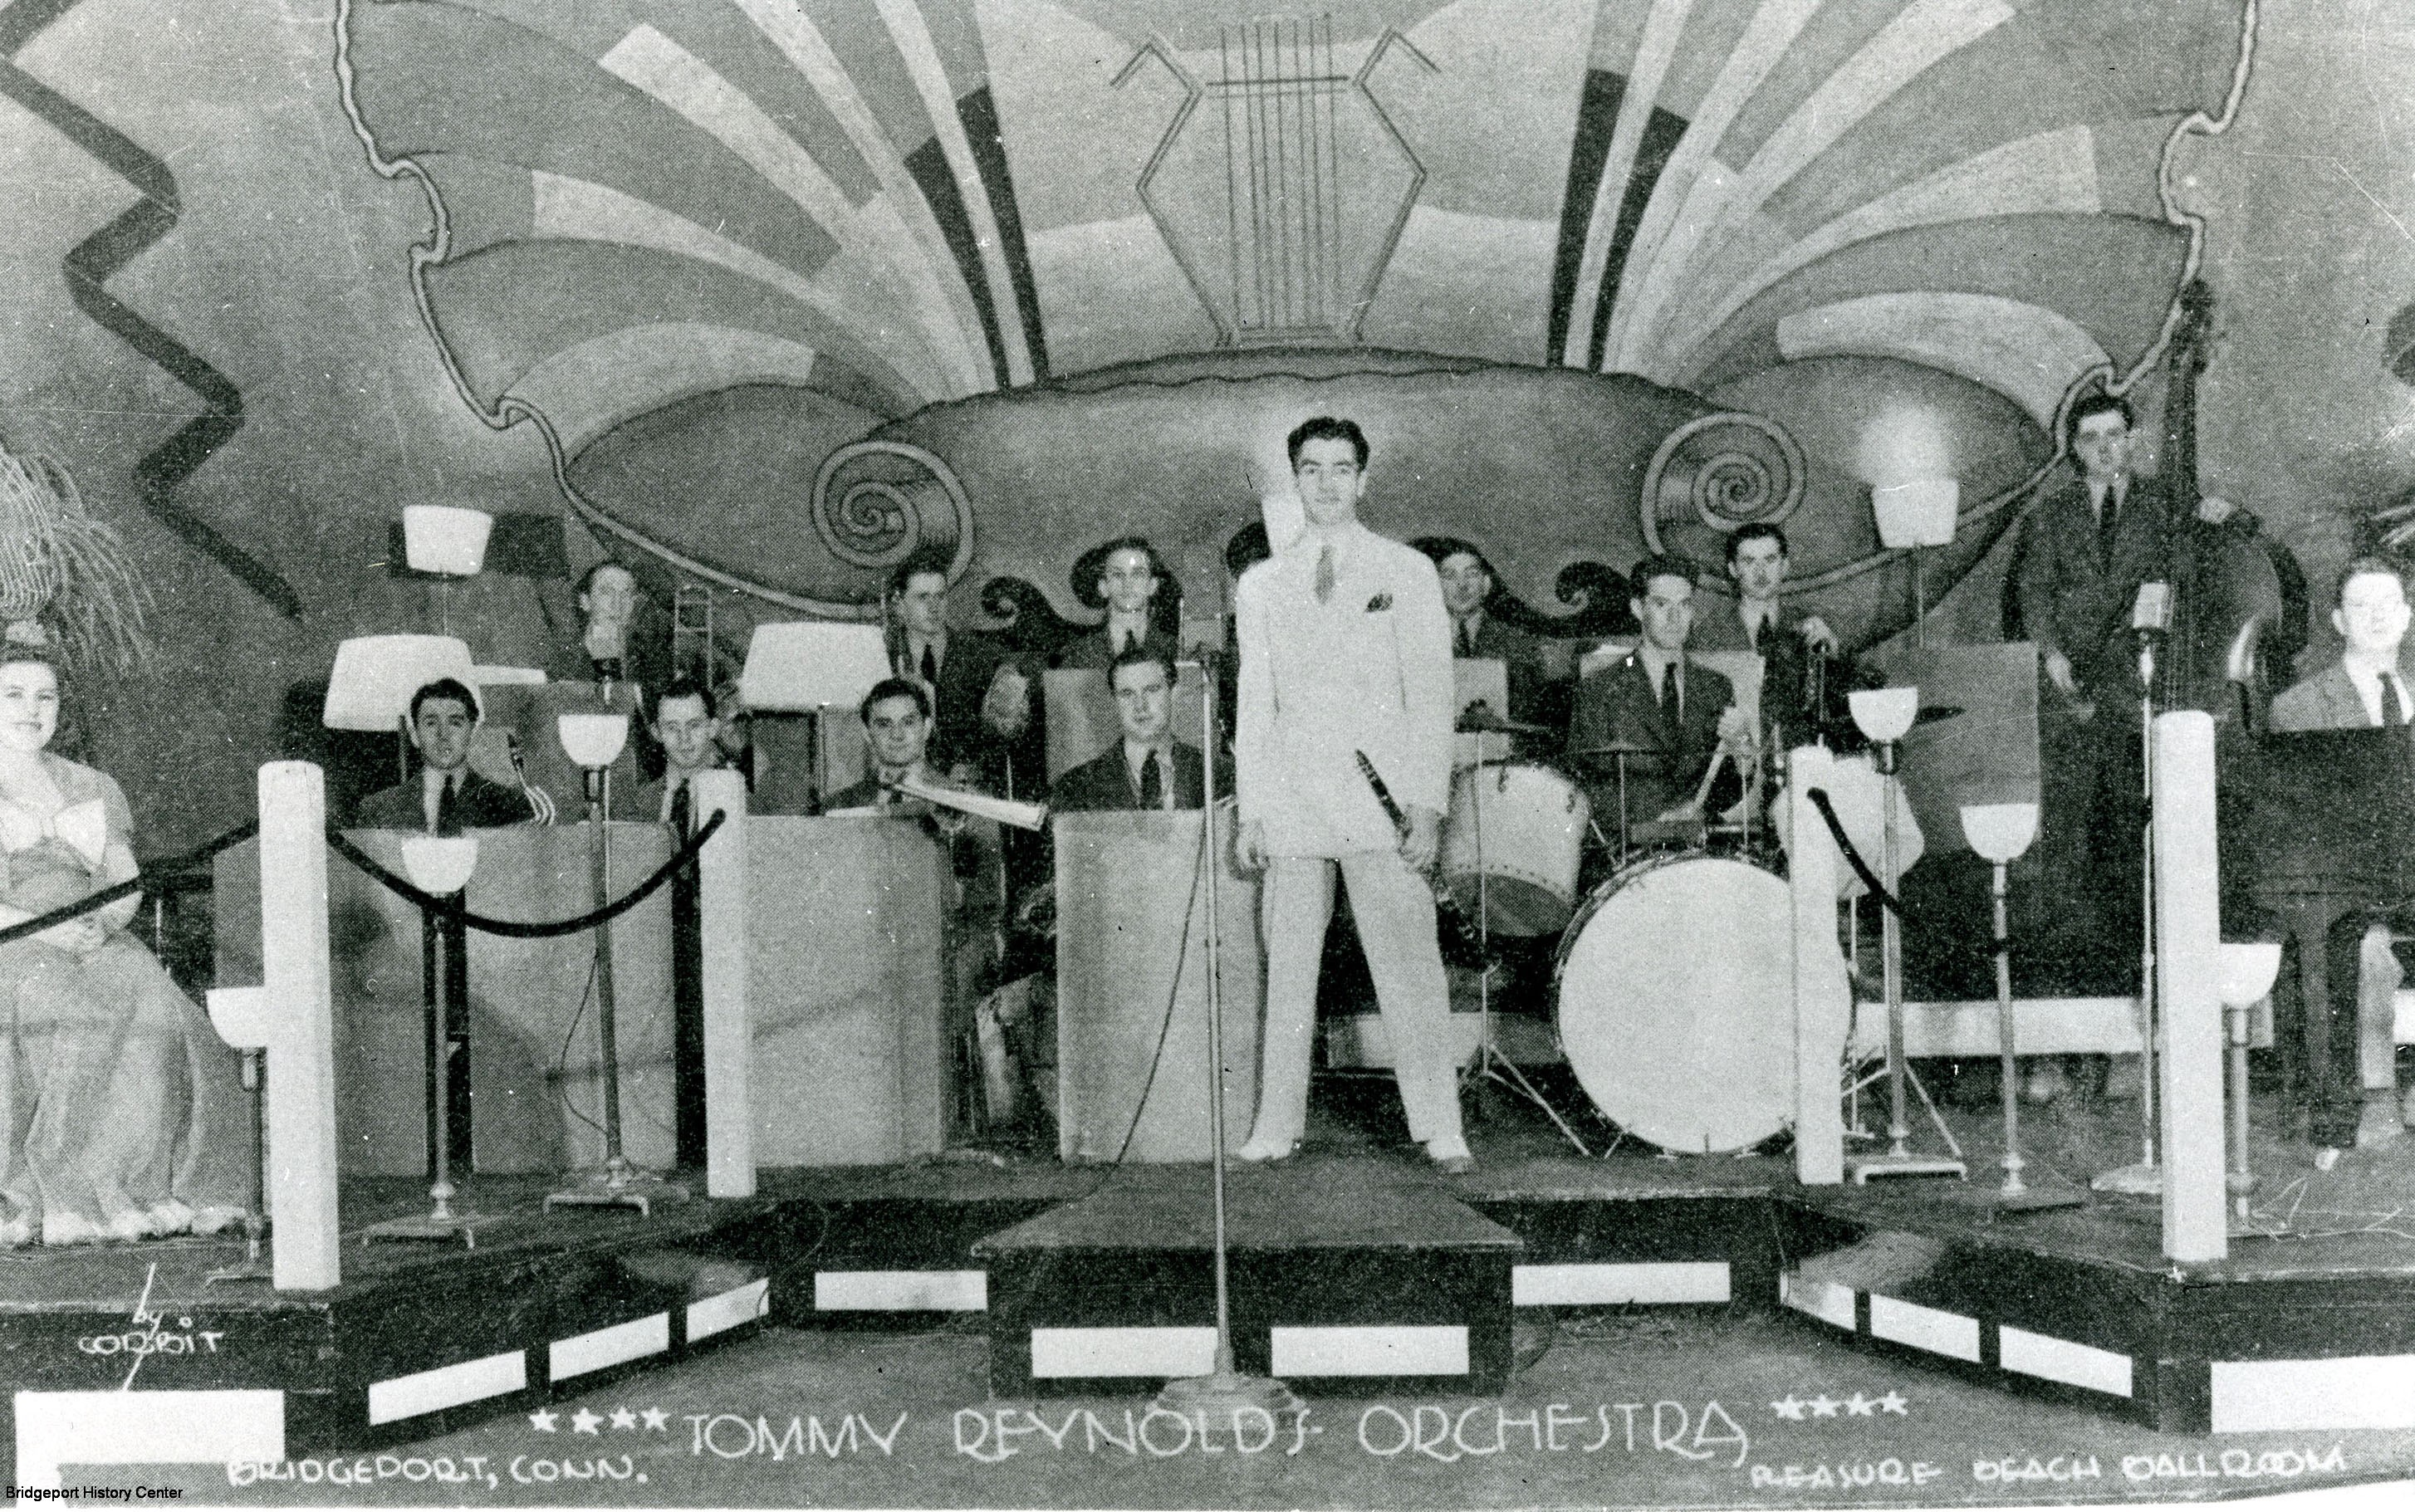 Tommy Reynolds Orhestra, Pleasure Beach Ballroom 1930-1940